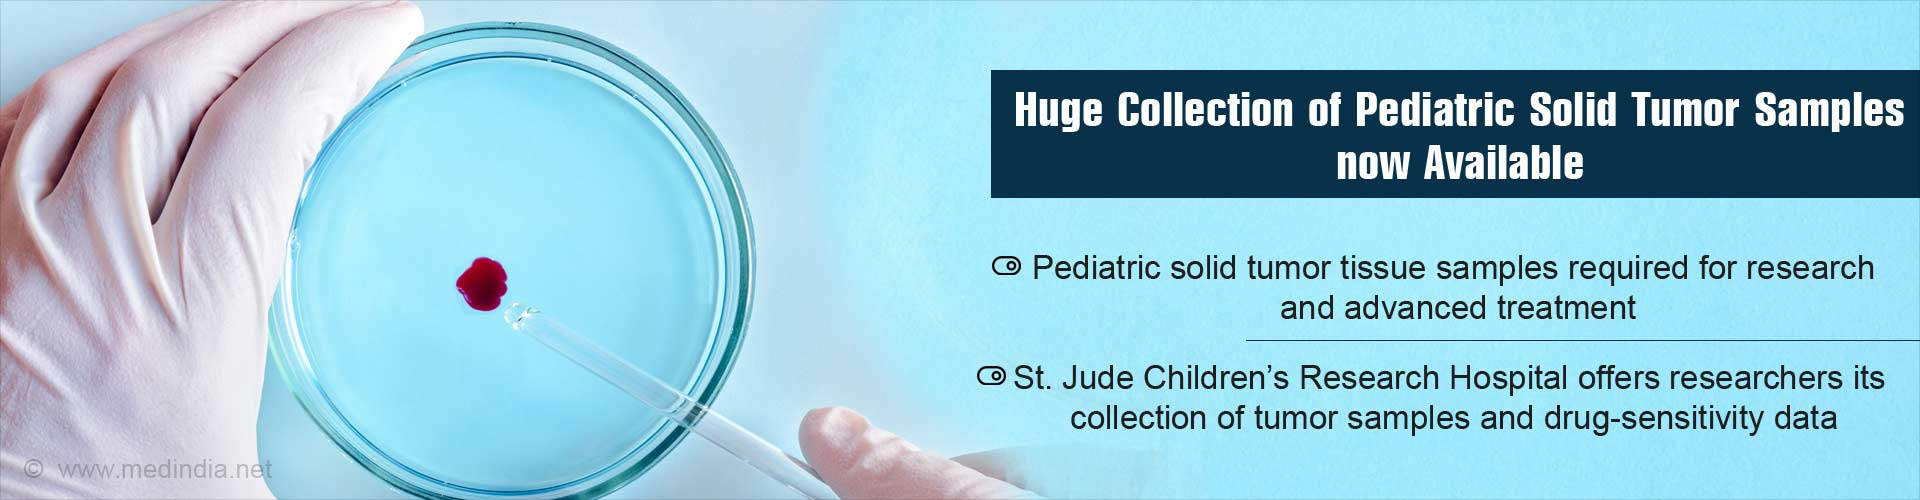 St. Jude Children's Research Hospital Creates a Powerful Resource of Pediatric Tumor Samples